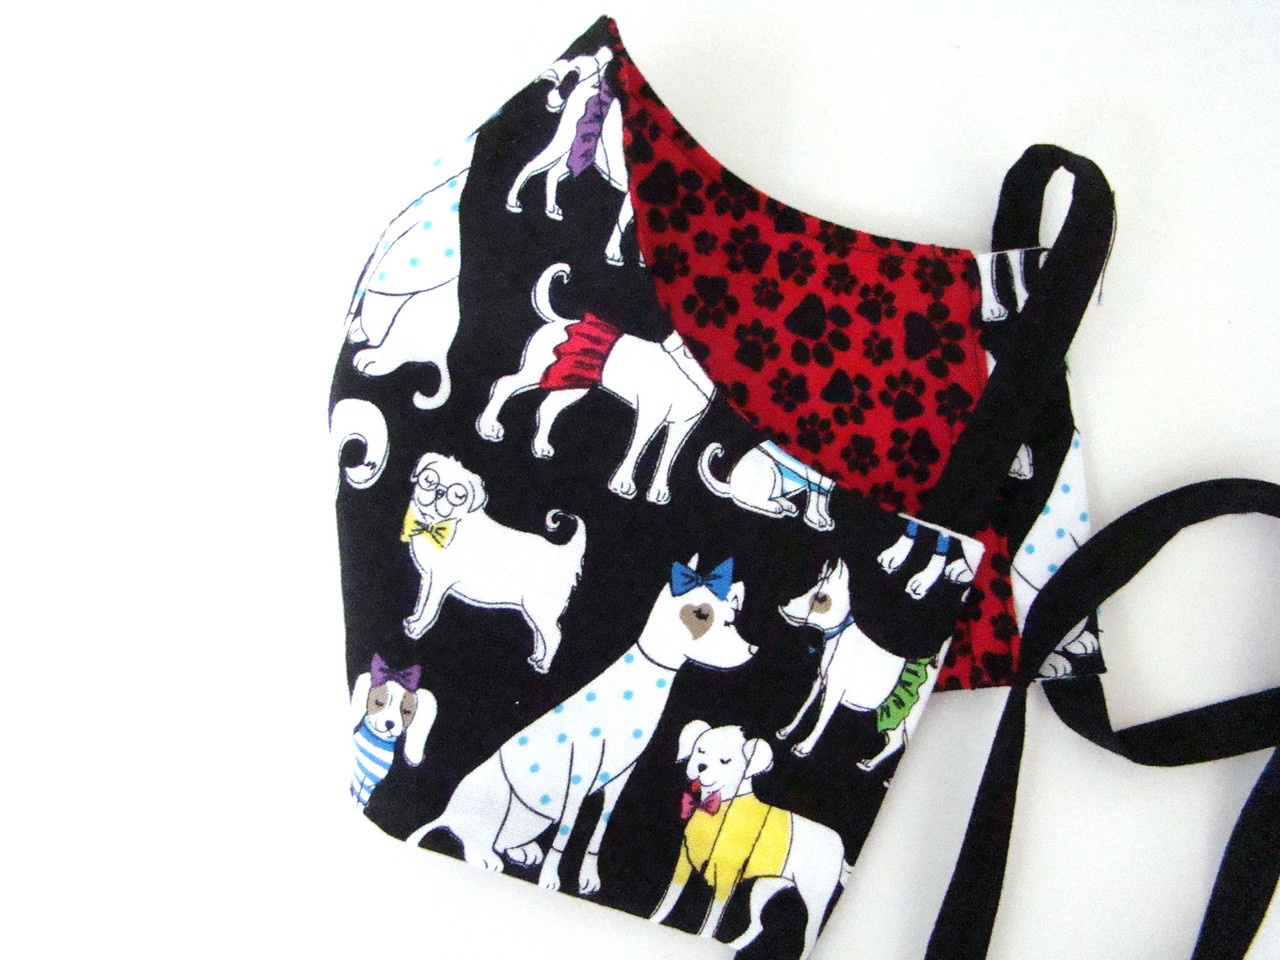 Dressed Dogs and Paw Prints Theme Print (FM-DRESSEDDOGS-PAWPRINTS)